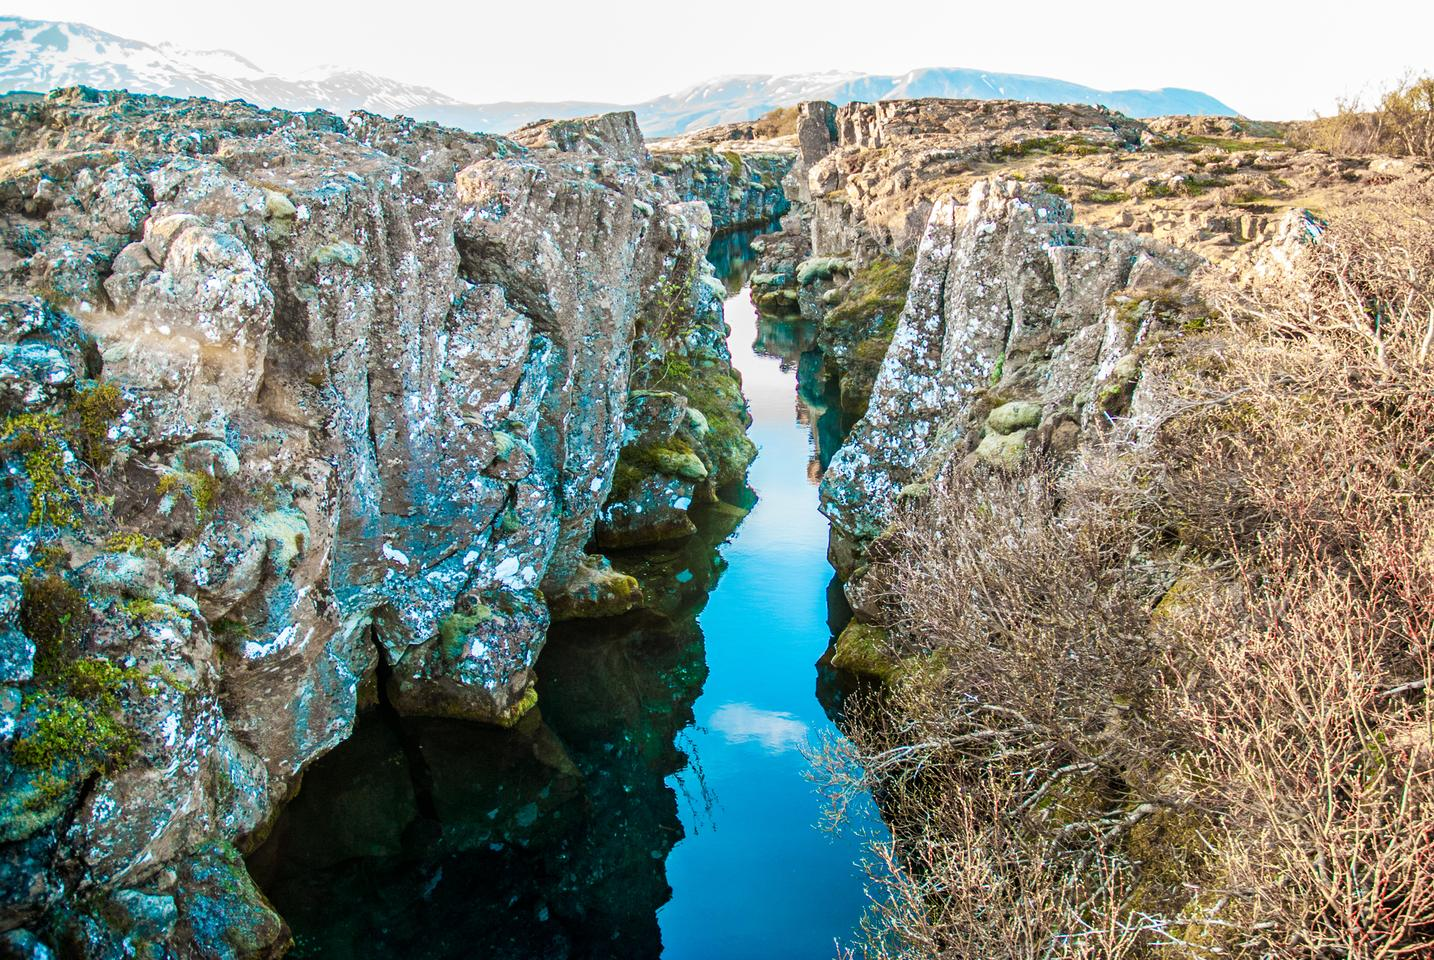 Thingvellir National park in Iceland features a valley created by two tectonic plates moving away from each other